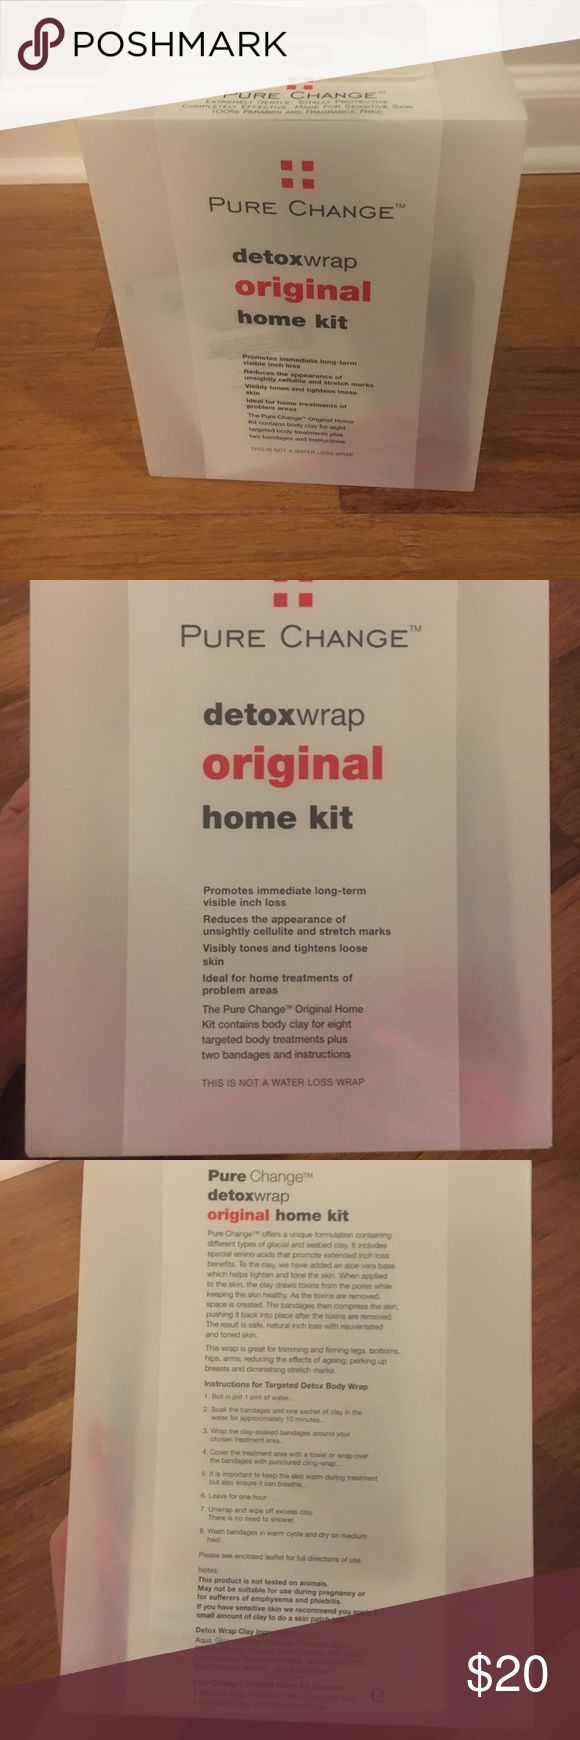 Detox wrap never used or opened Reduces cellulite, tones and tightens Accessories